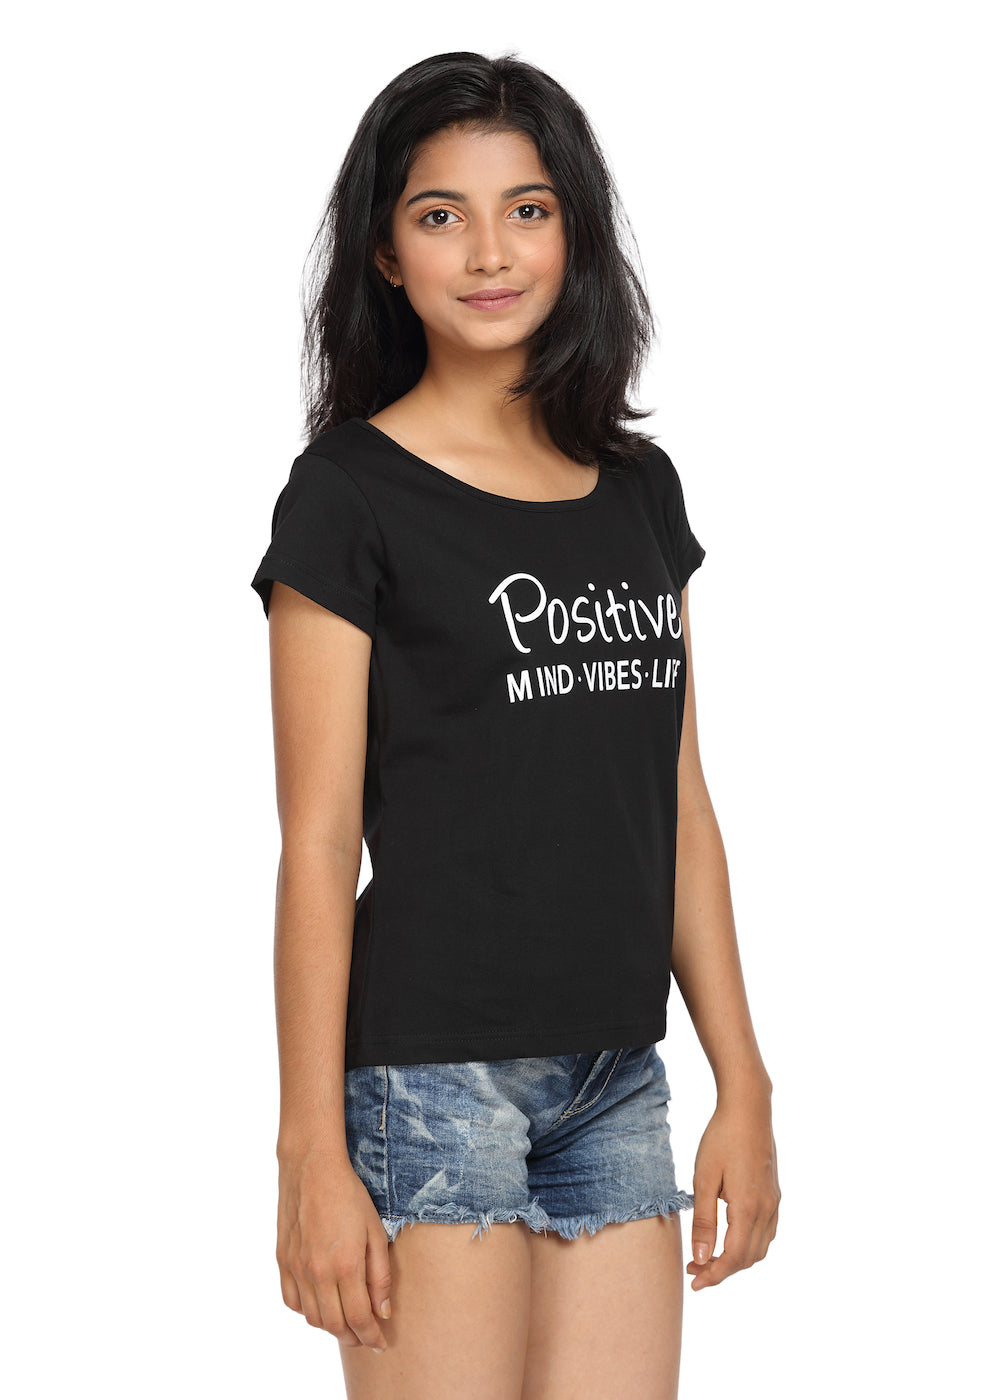 Printed T-shirt Black Color with Positive Life Print - GENZEE